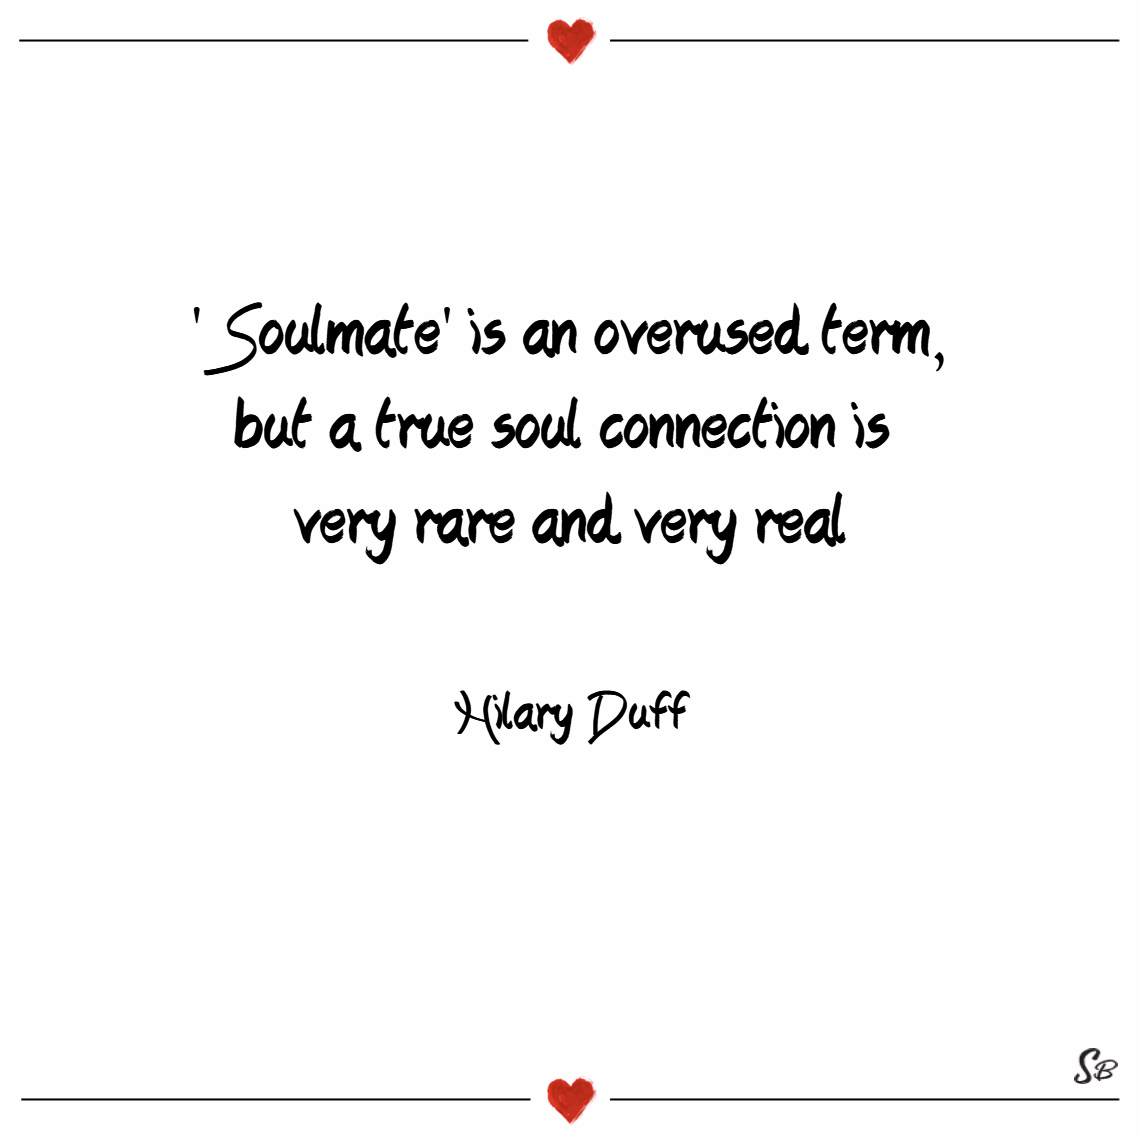 'soulmate' is an overused term, but a true soul connection is very rare and very real. – hilary duff